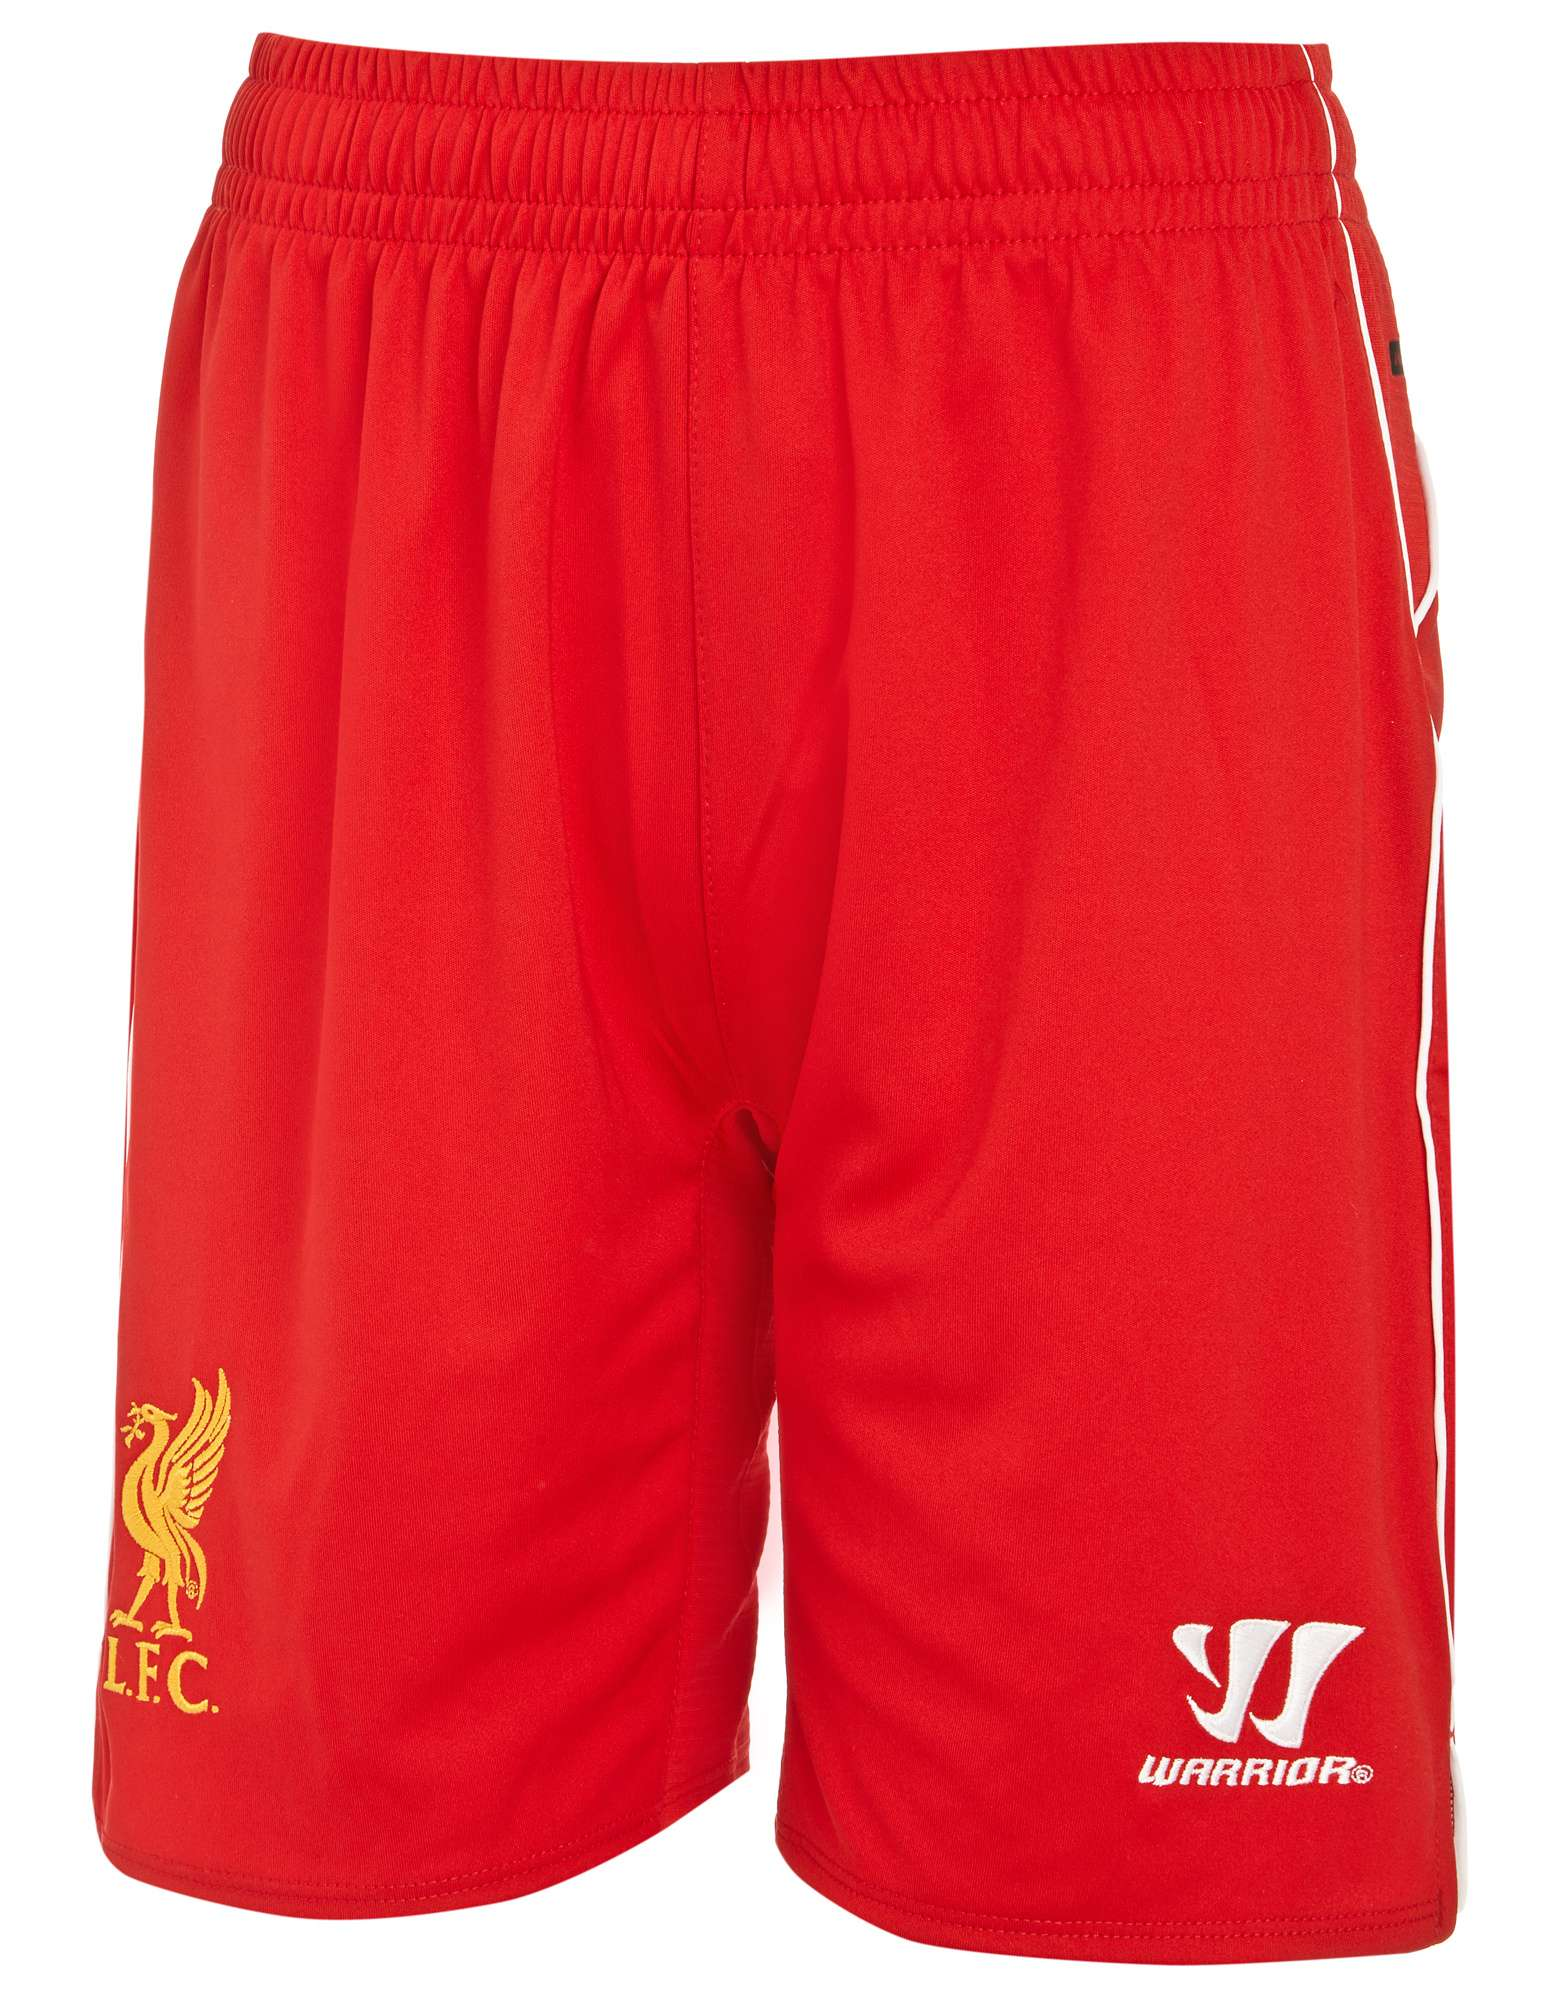 Warrior Sports Liverpool 2014 Junior Home Shorts